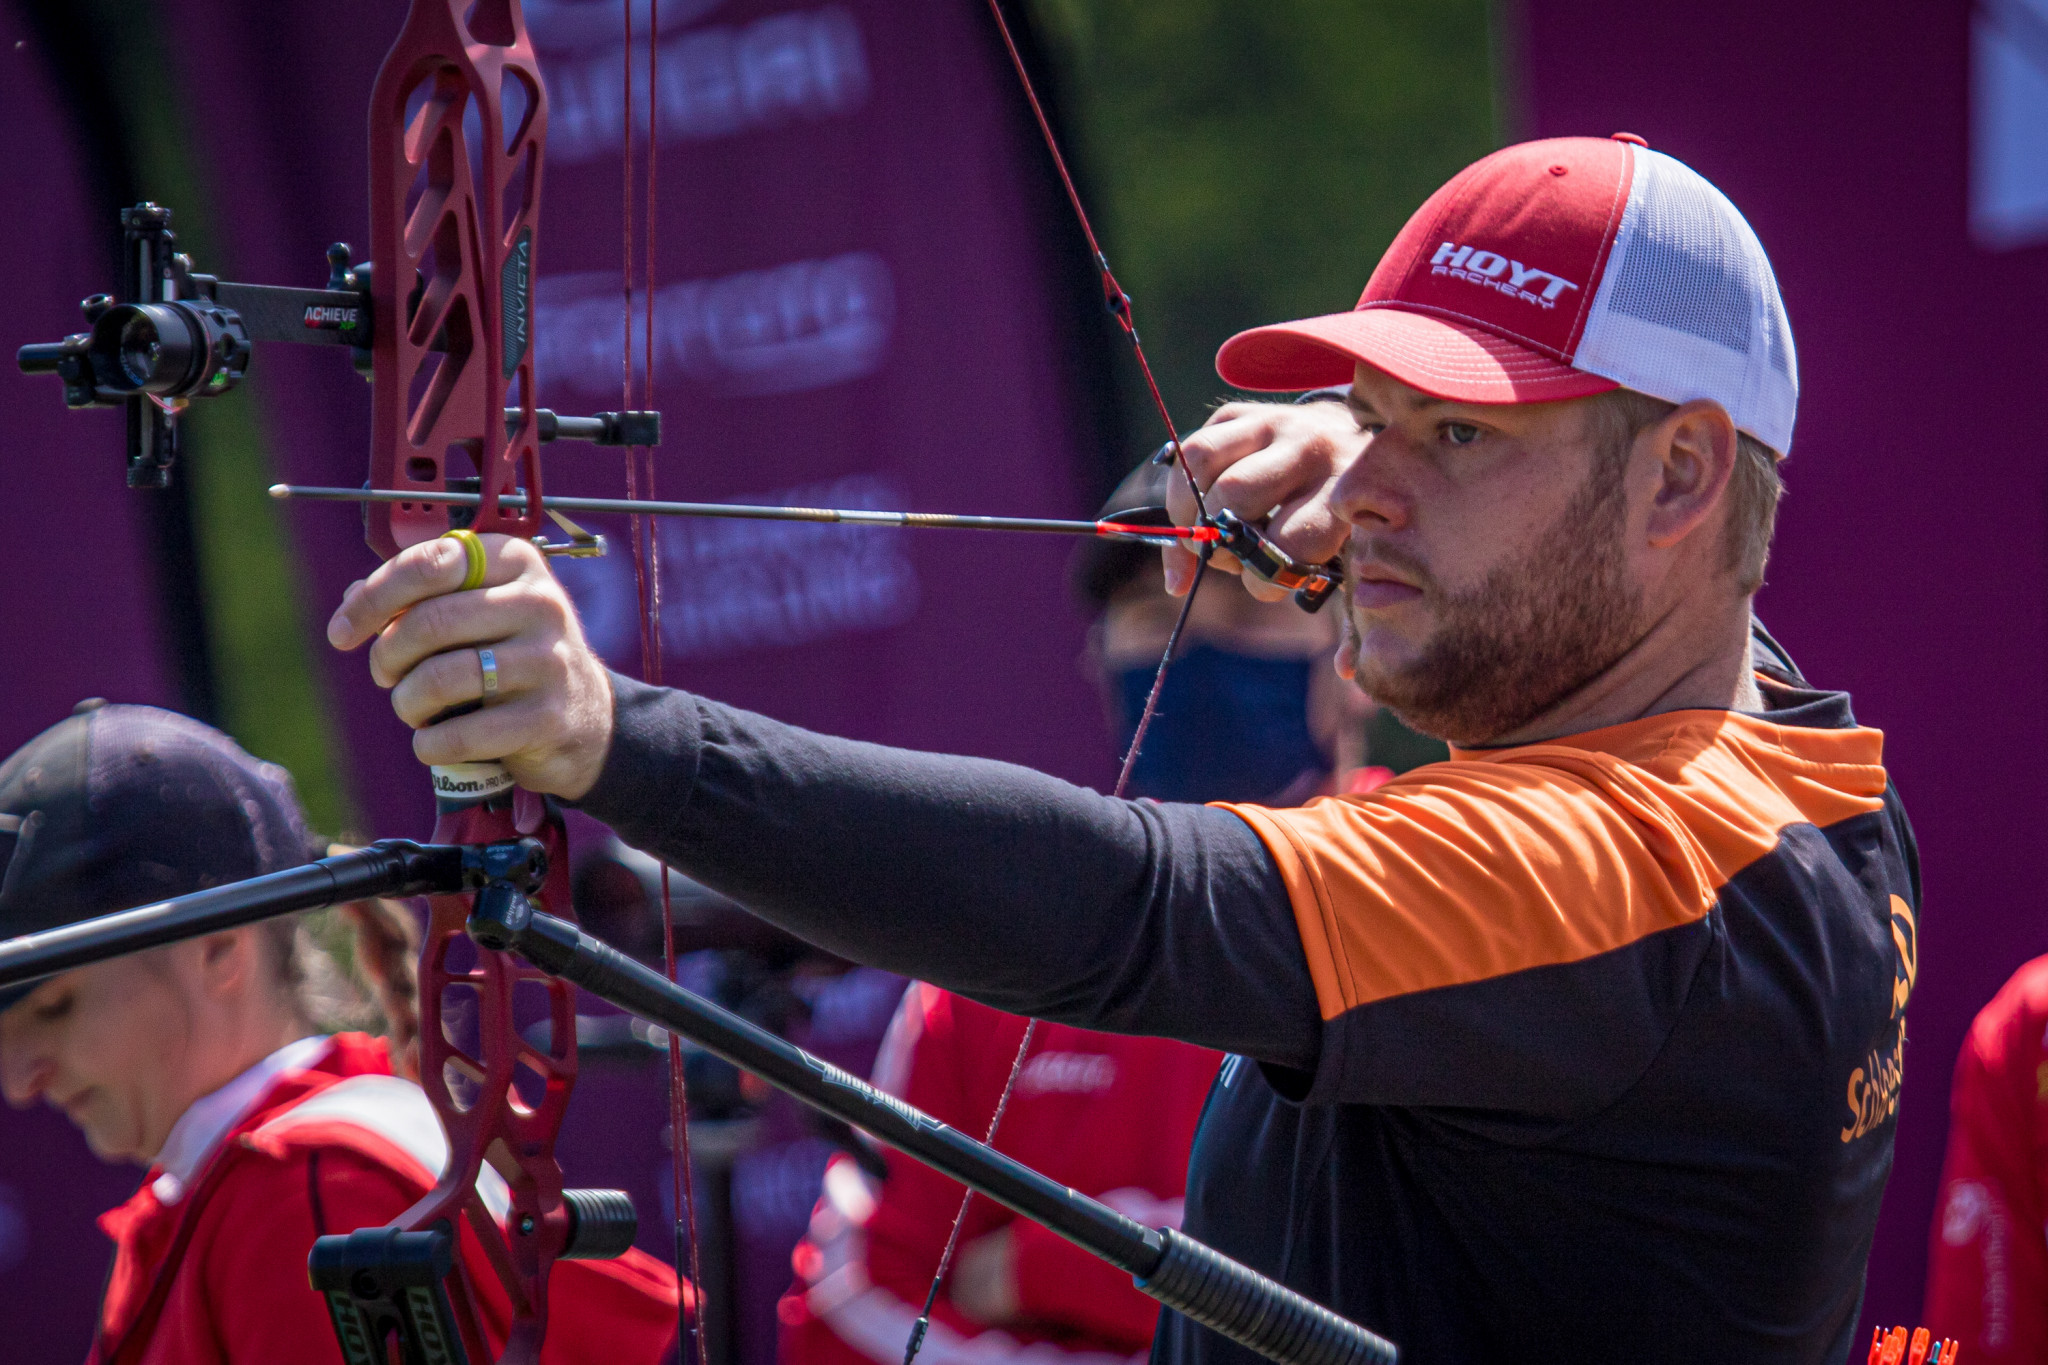 Schloesser shoots perfect game to reach last eight at World Archery Championships